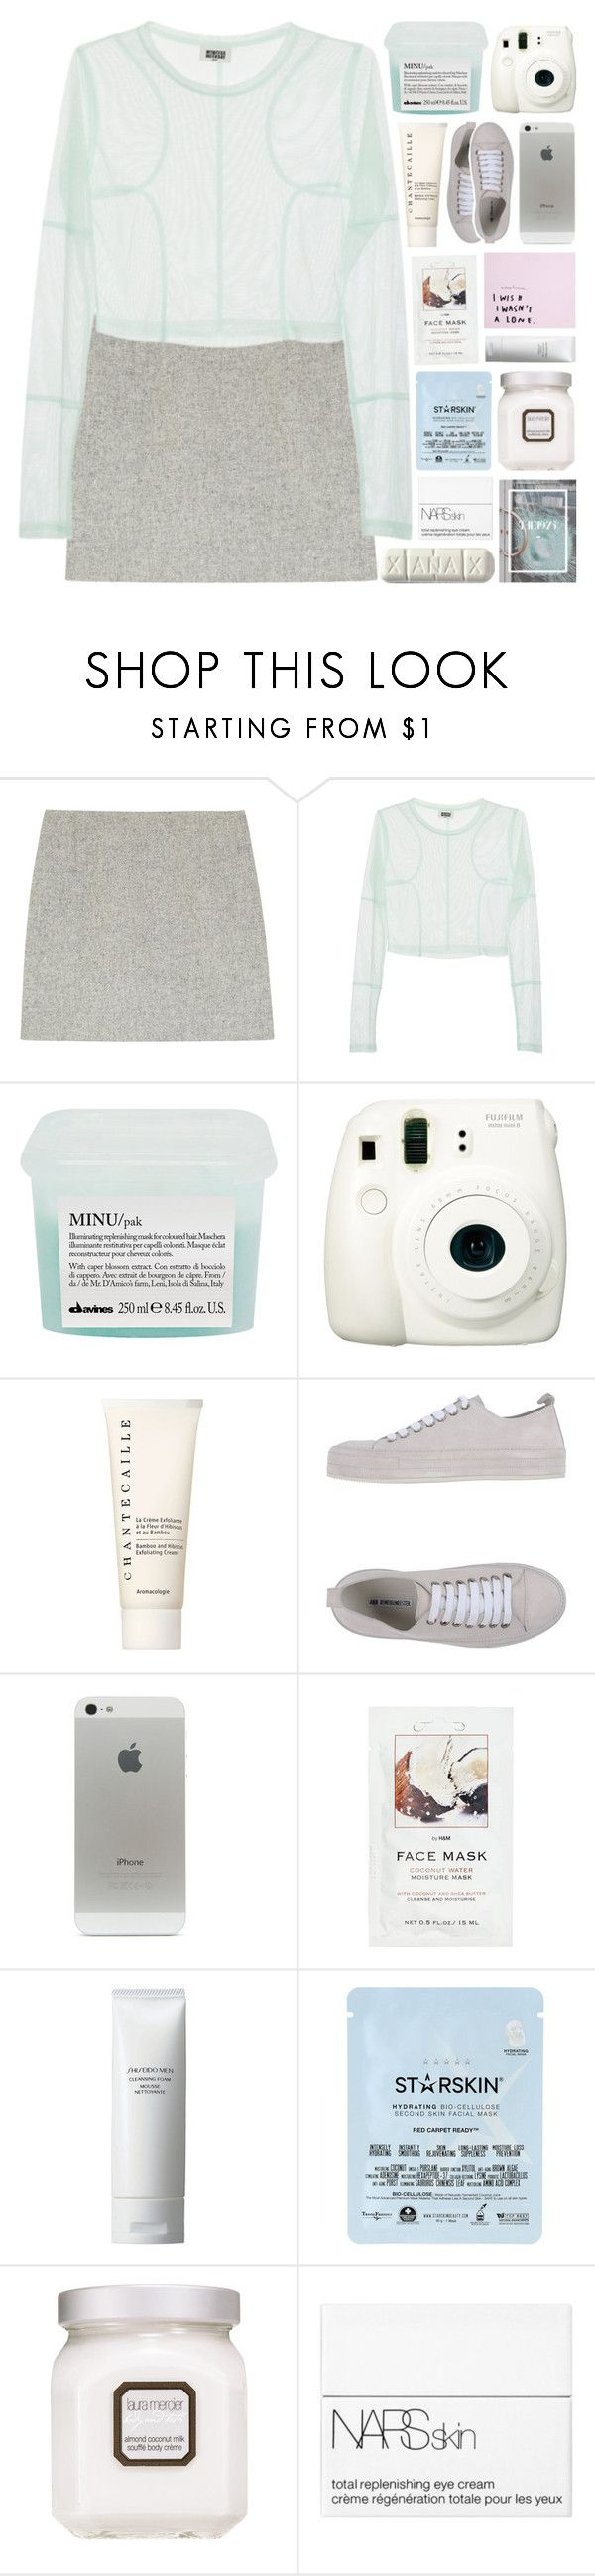 """""""difference in opinion was never an issue"""" by kristen-gregory-sexy-sports-babe ❤ liked on Polyvore featuring Atto, Davines, Fuji, Chantecaille, Ann Demeulemeester, H&M, Shiseido, Starskin, Laura Mercier and NARS Cosmetics"""